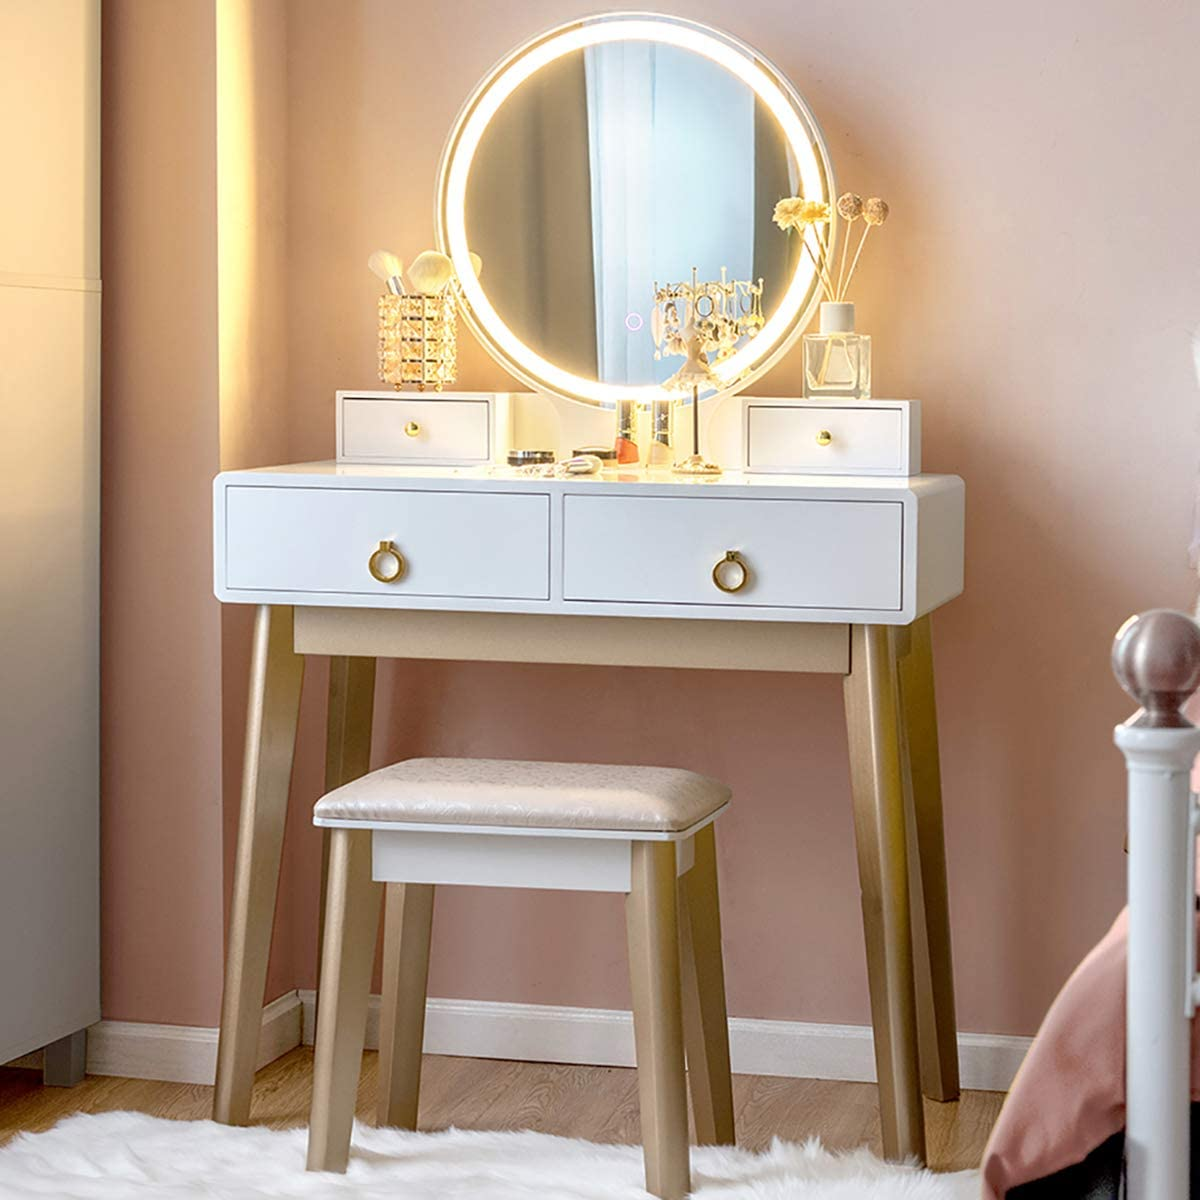 Dressing Table with 4 Sliding Drawers 3 Color Lighting Modes Modern Bedroom Makeup Table and Cushioned Stool Set for Women Girls CHARMAID Vanity Set with Touch Screen Dimming Mirror Black